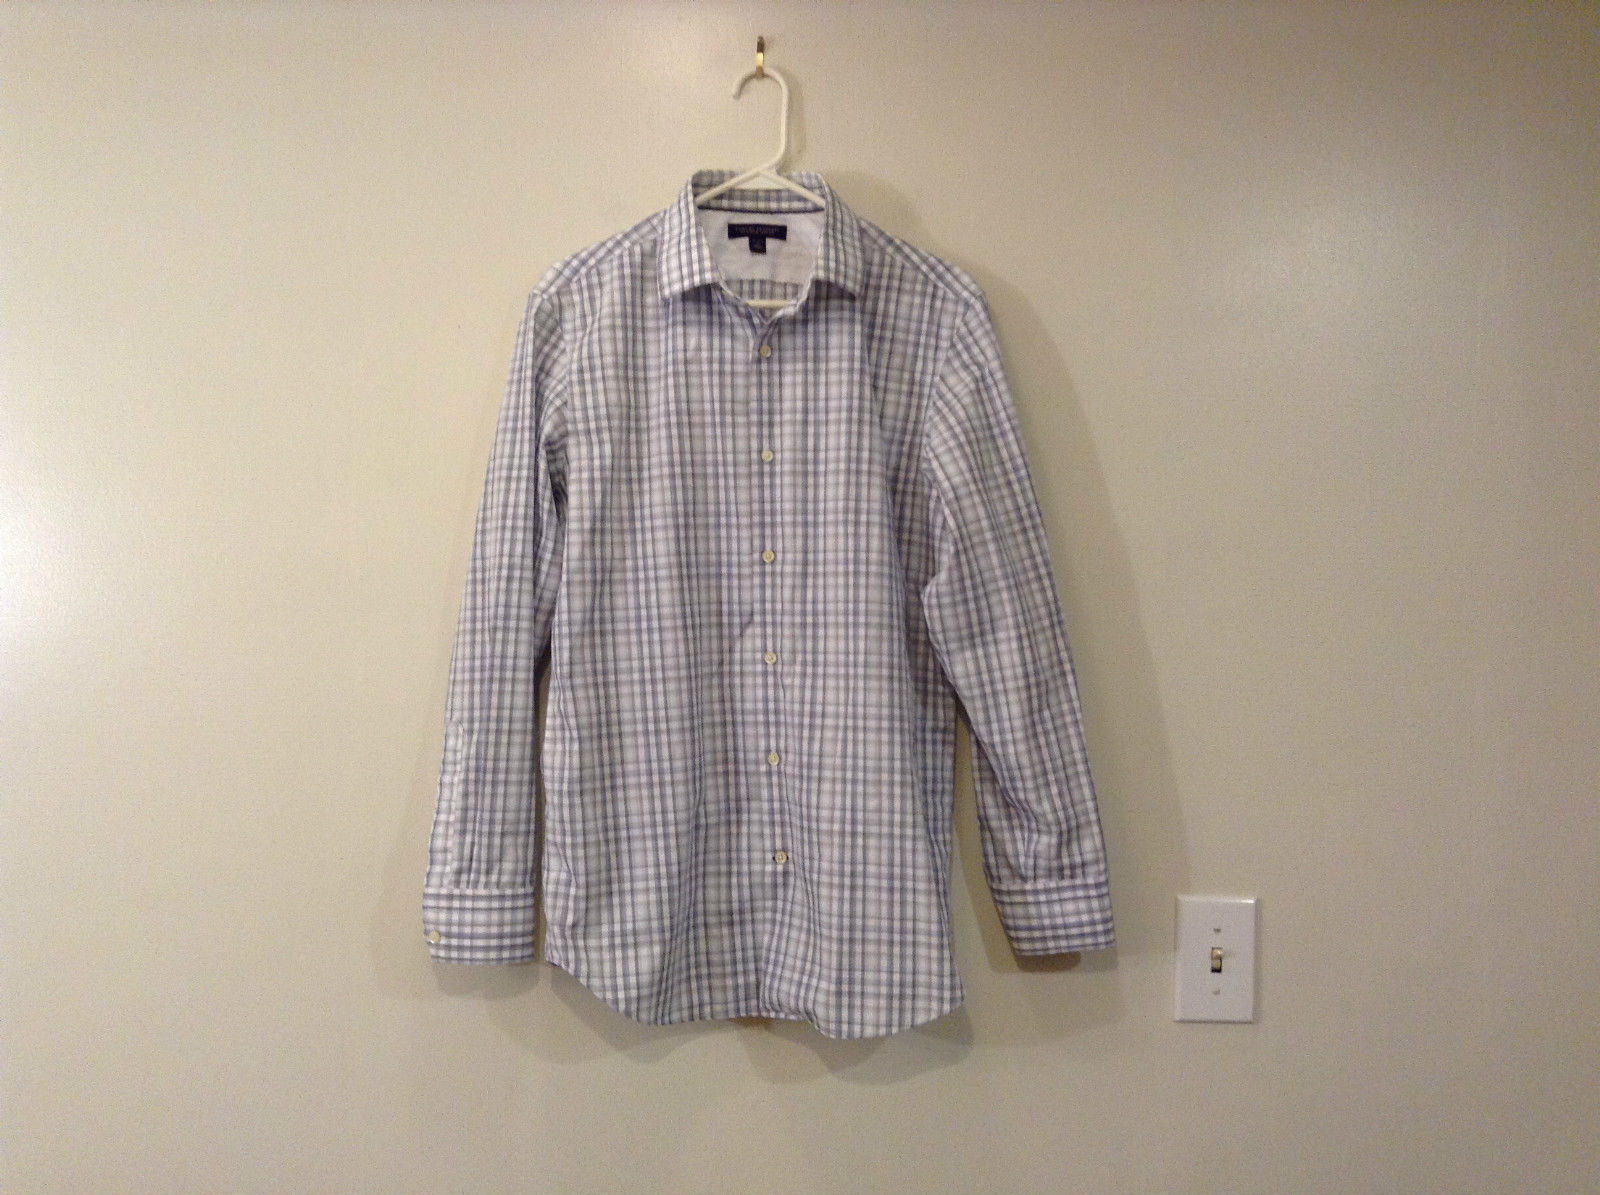 Banana Republic Slim Fit Button Up Shirt White with Blue Brown Stripes Size M